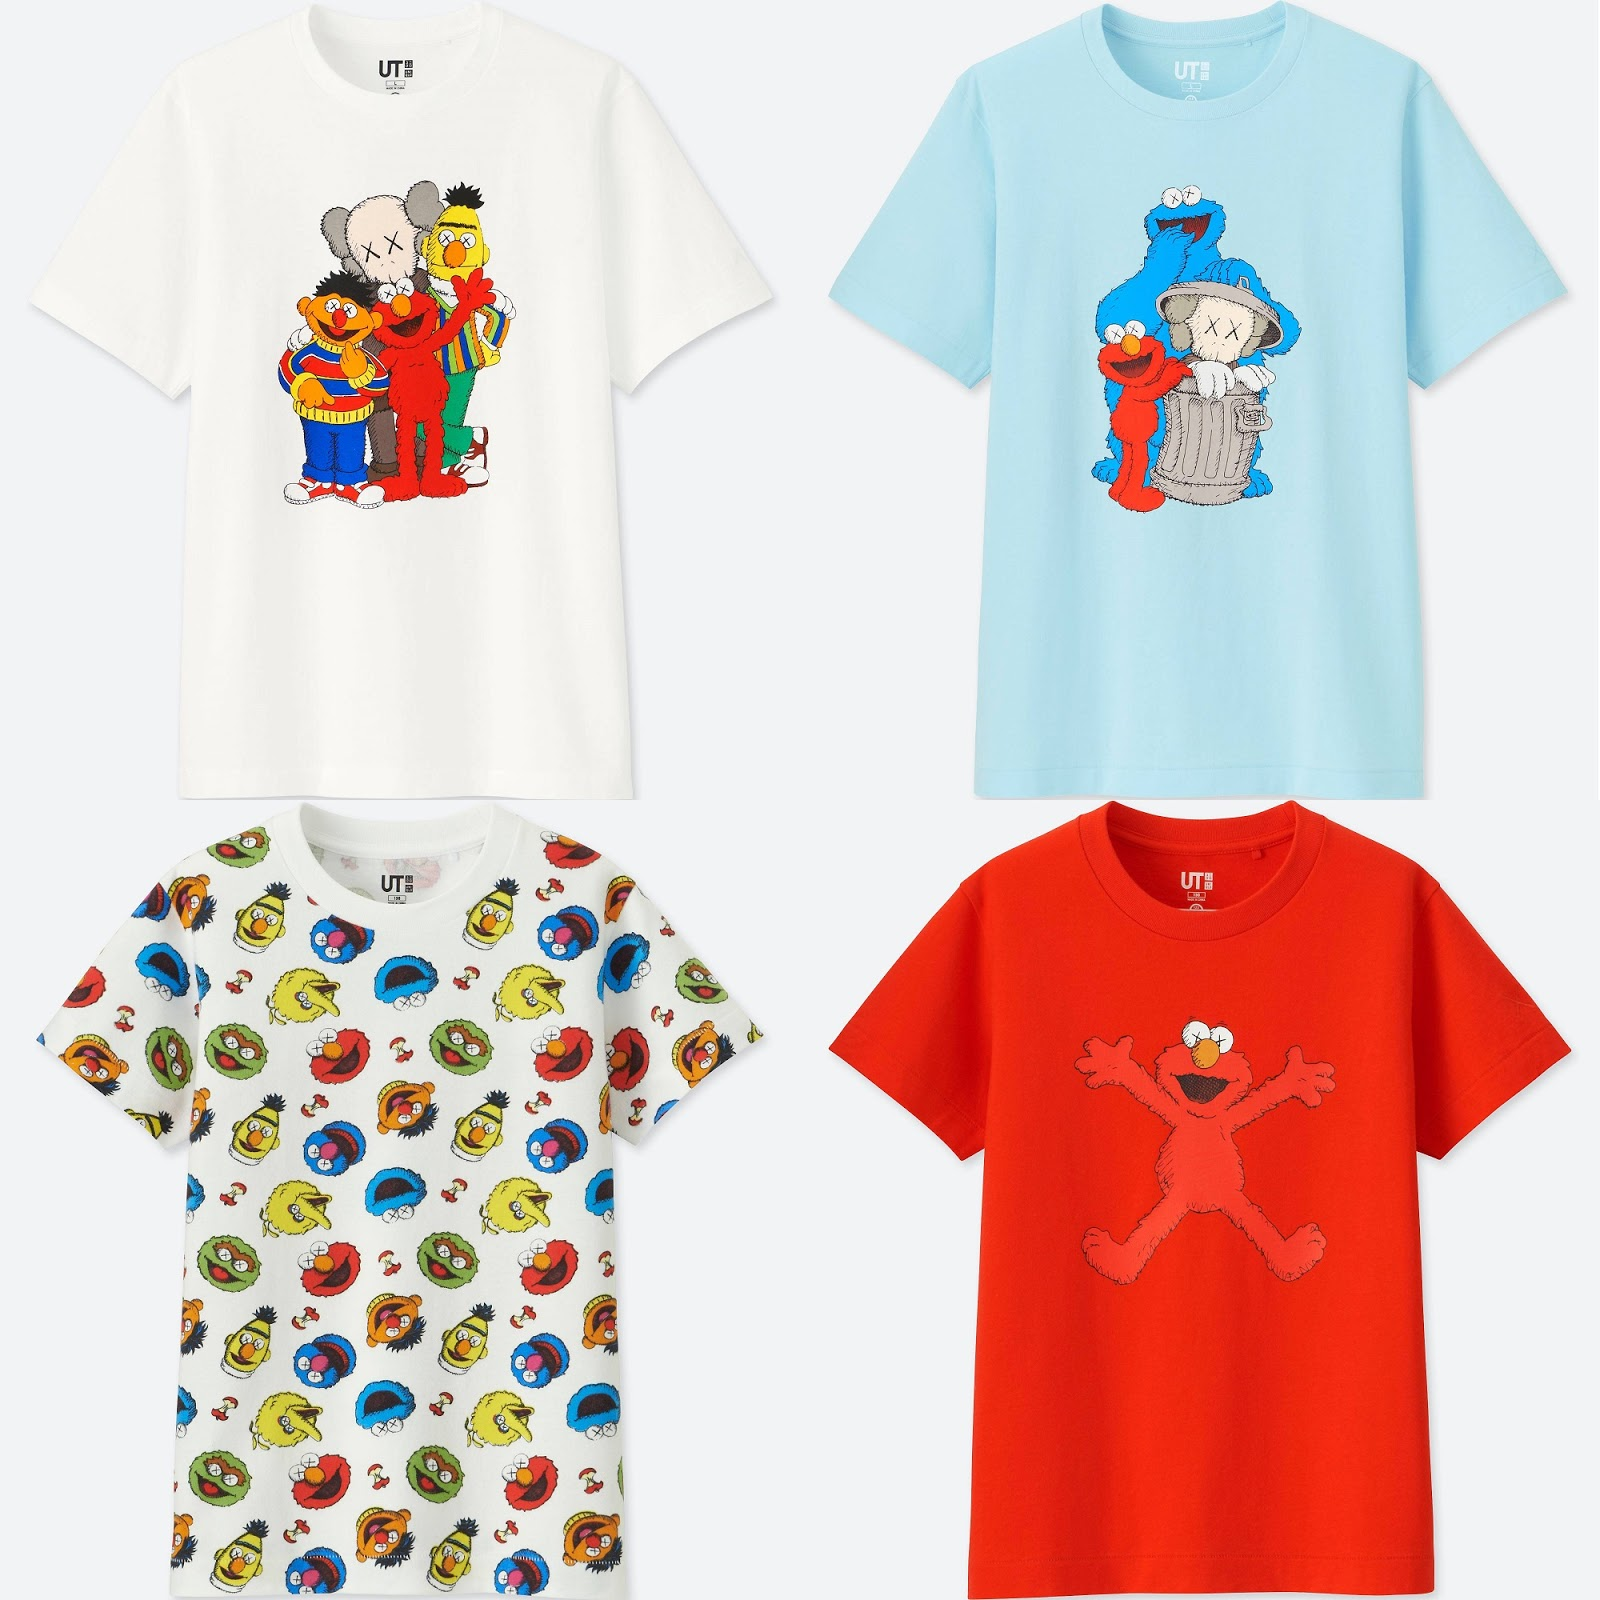 50a3958b The Blot Says...: KAWS x Sesame Street T-Shirt Collection by Uniqlo